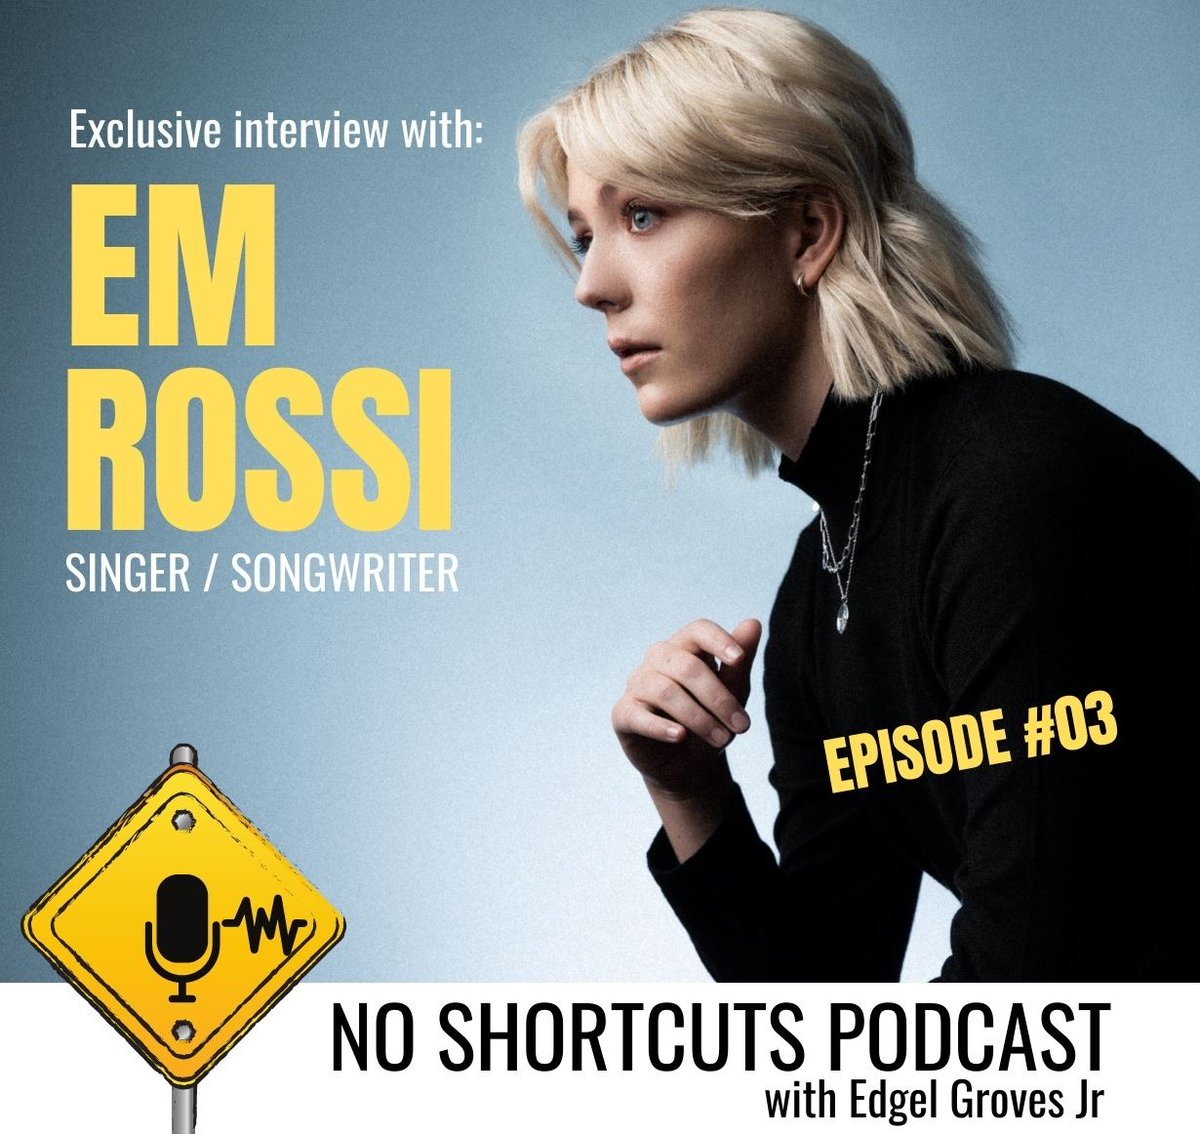 test Twitter Media - I had such a great, candid conversation with Edgel Groves on his No Shortcuts Podcast! We spoke about the realities of what it's like for artists pursuing music, new songs, my personal experience with mental health, and much more!  Please give it a listen! https://t.co/Pf911nbXw5 https://t.co/HkPPrpXEzP